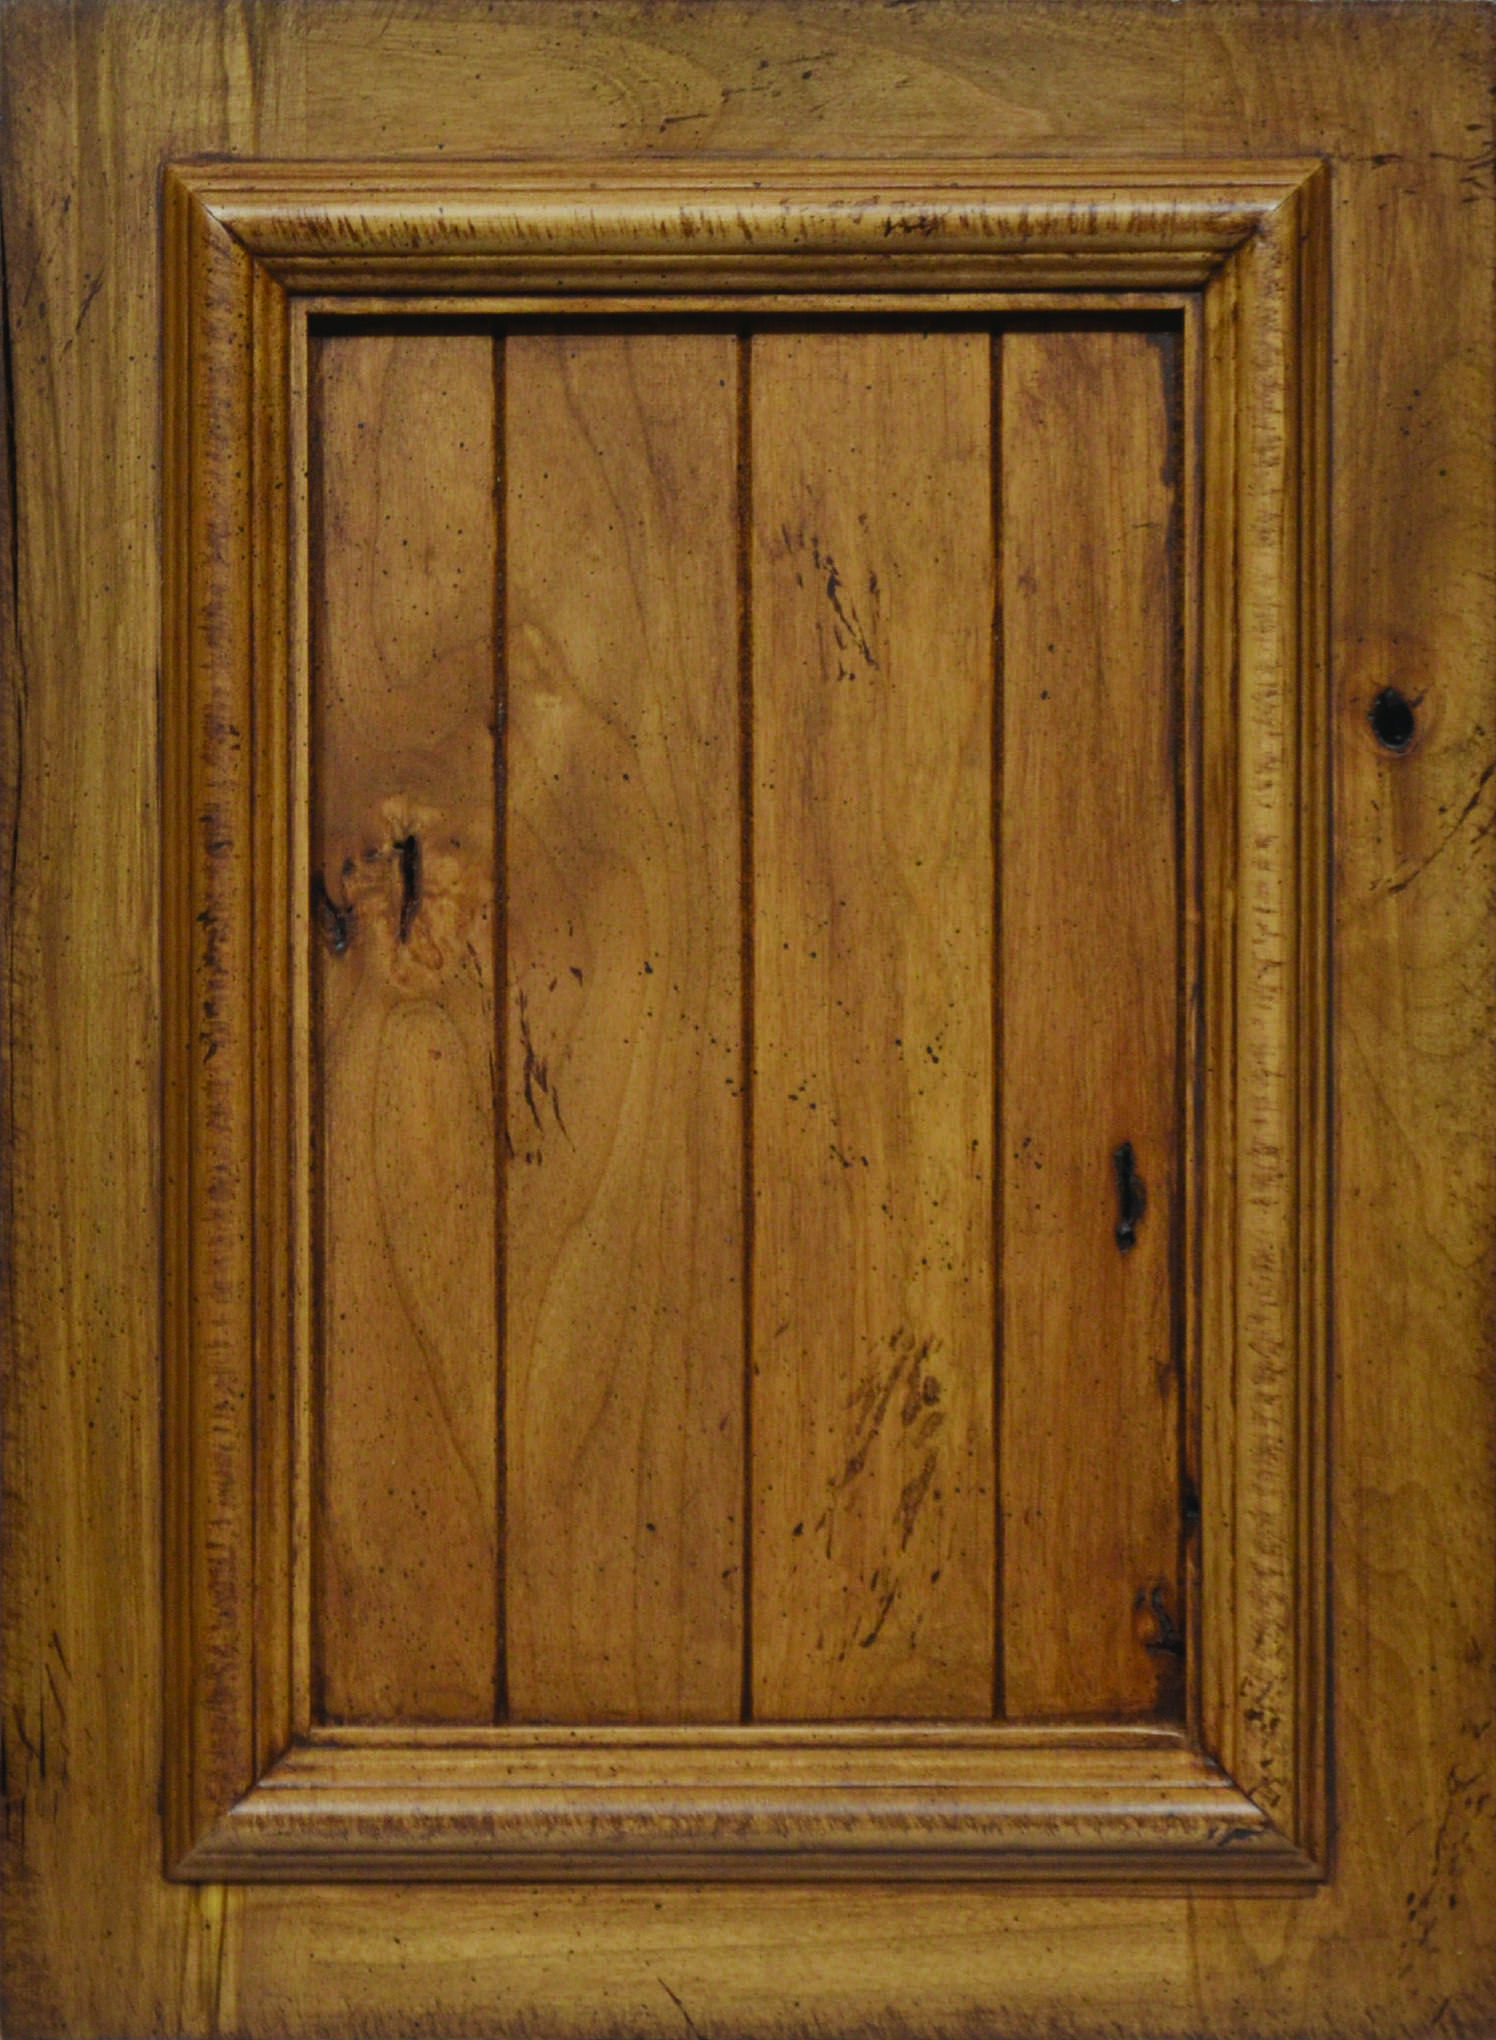 Rockport Grooved Flat Panel Door With Applied Moulding Available